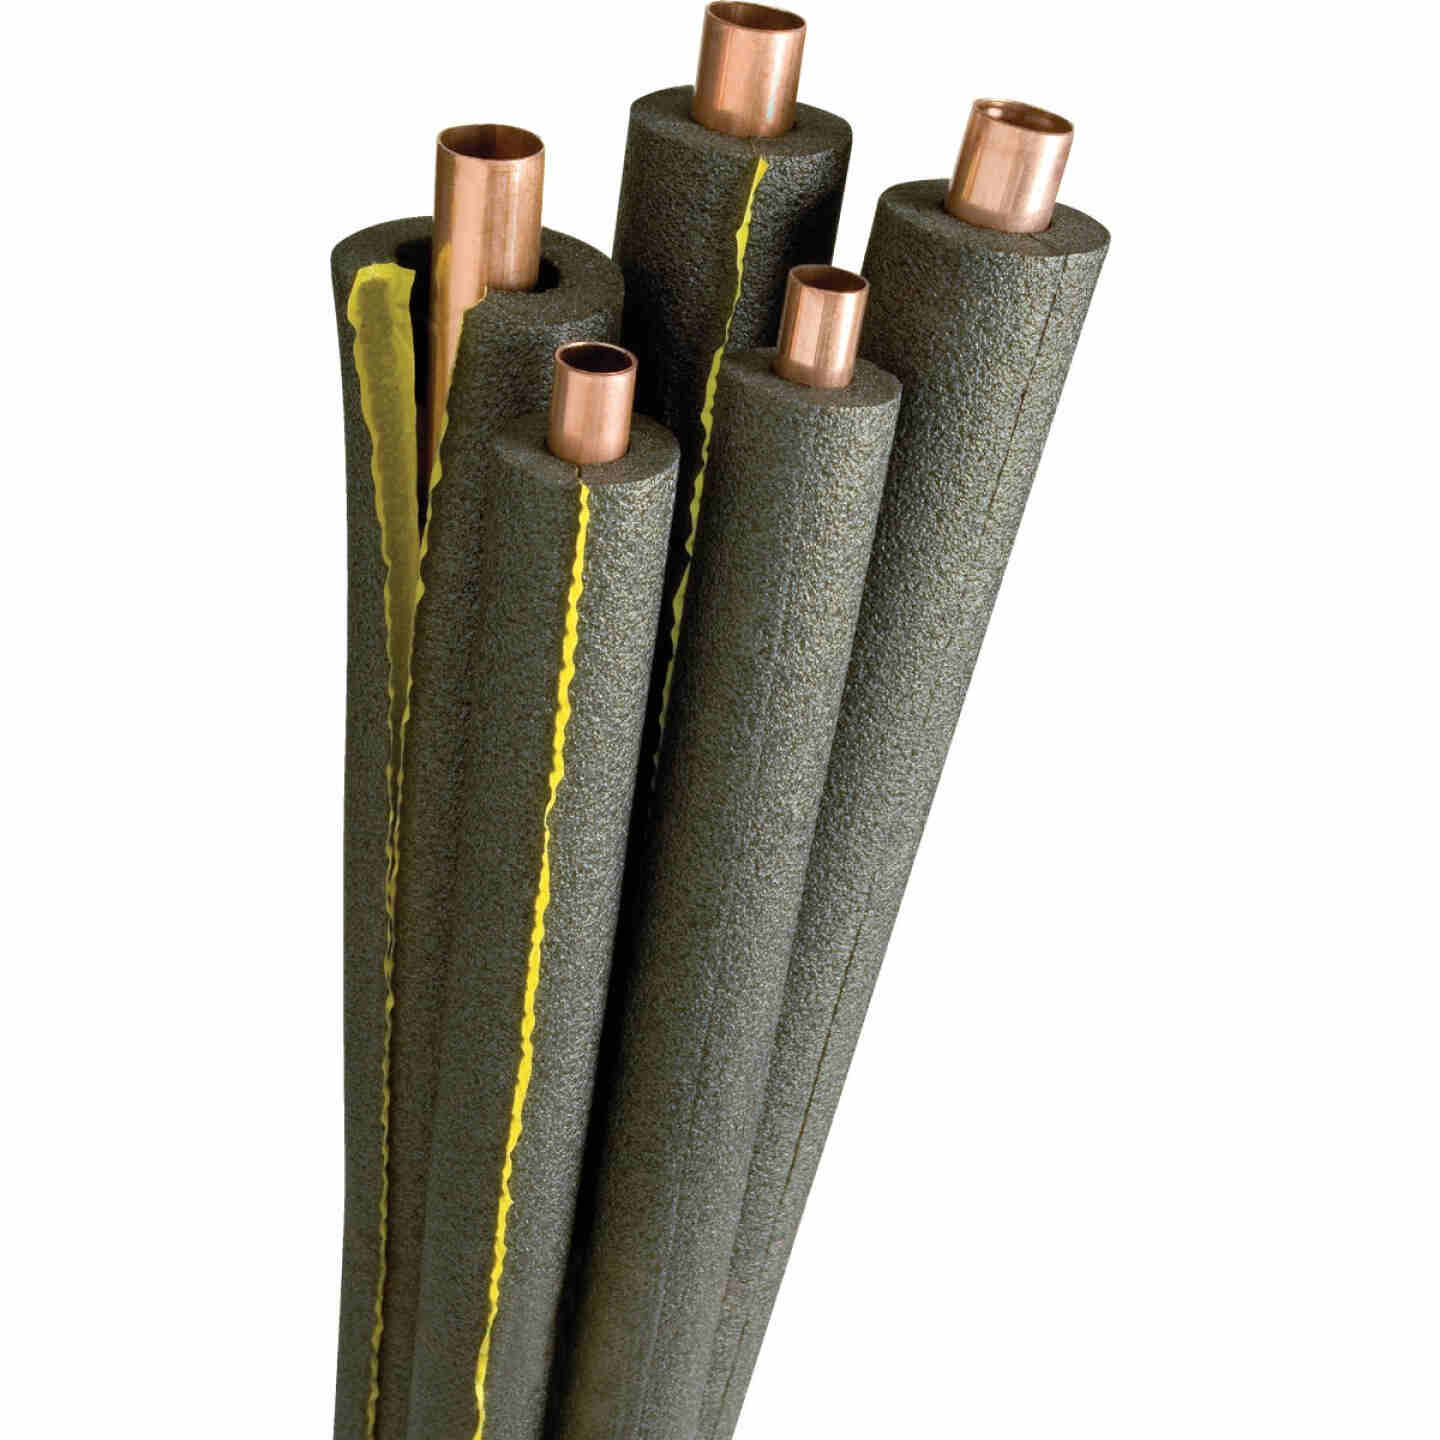 Tundra 1/2 In. Wall Self-Sealing Polyethylene Pipe Insulation Wrap, 2 In. x 6 Ft. Fits Pipe Size 2 In. Iron Image 1